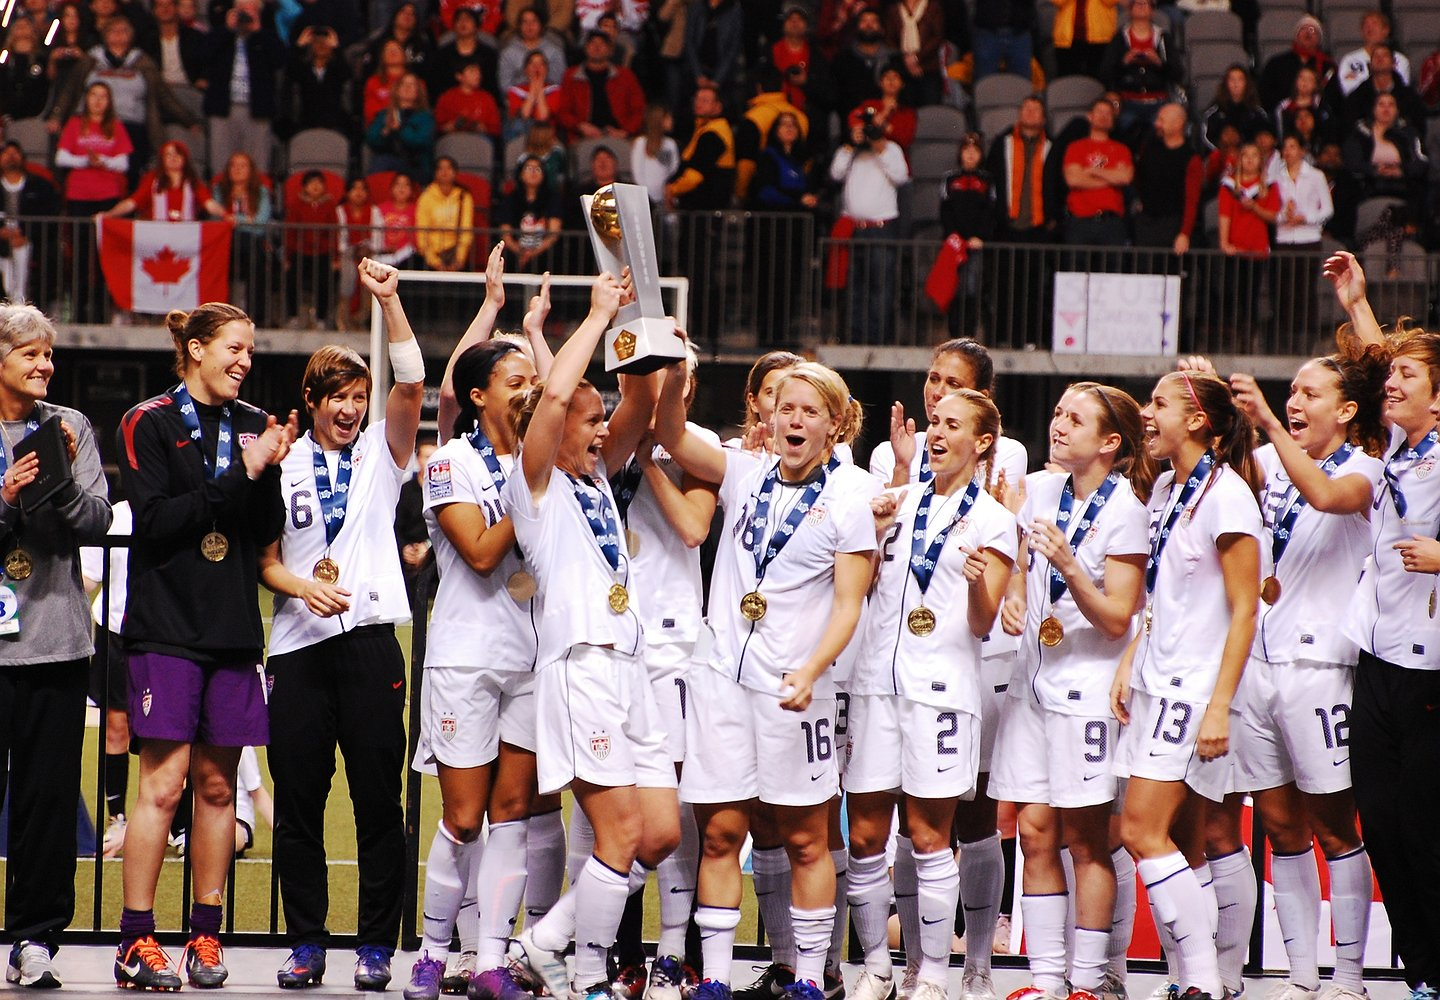 US Women's Soccer Team, Maurice Levy, Sir Martin Sorrell and More: Gender News Weekly